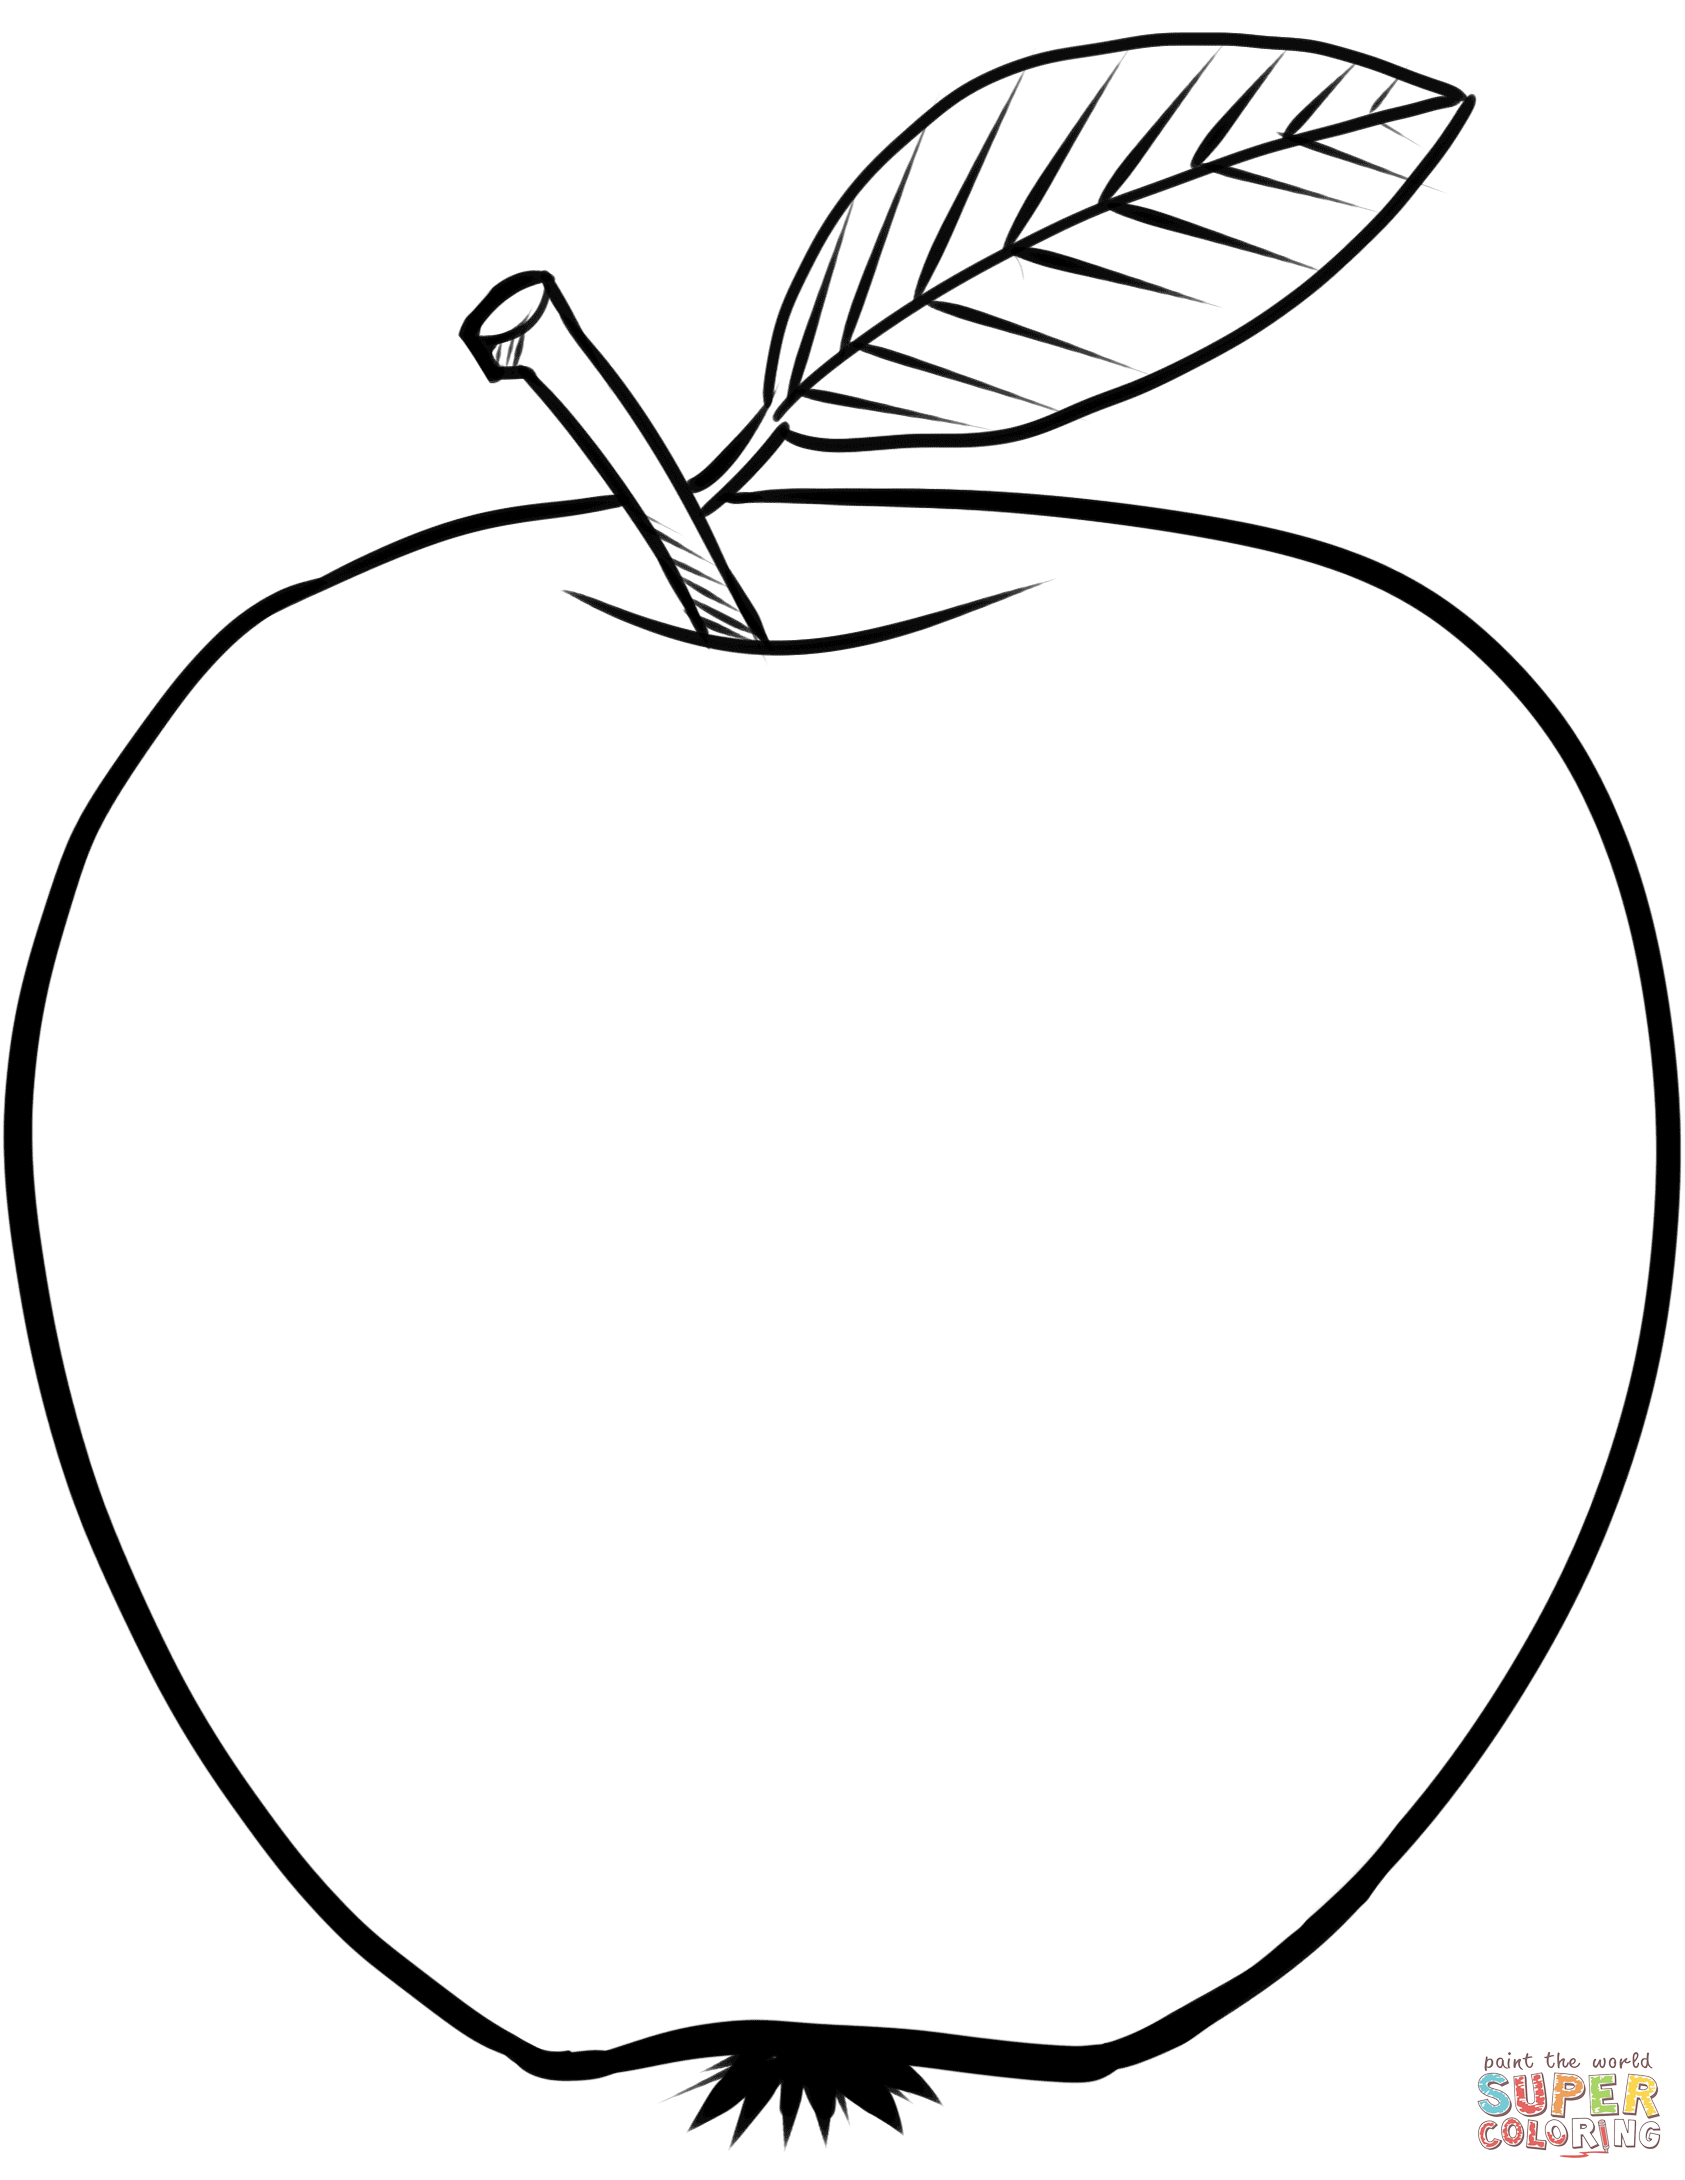 coloring picture of an apple apple printing pages creative children apple an coloring picture of